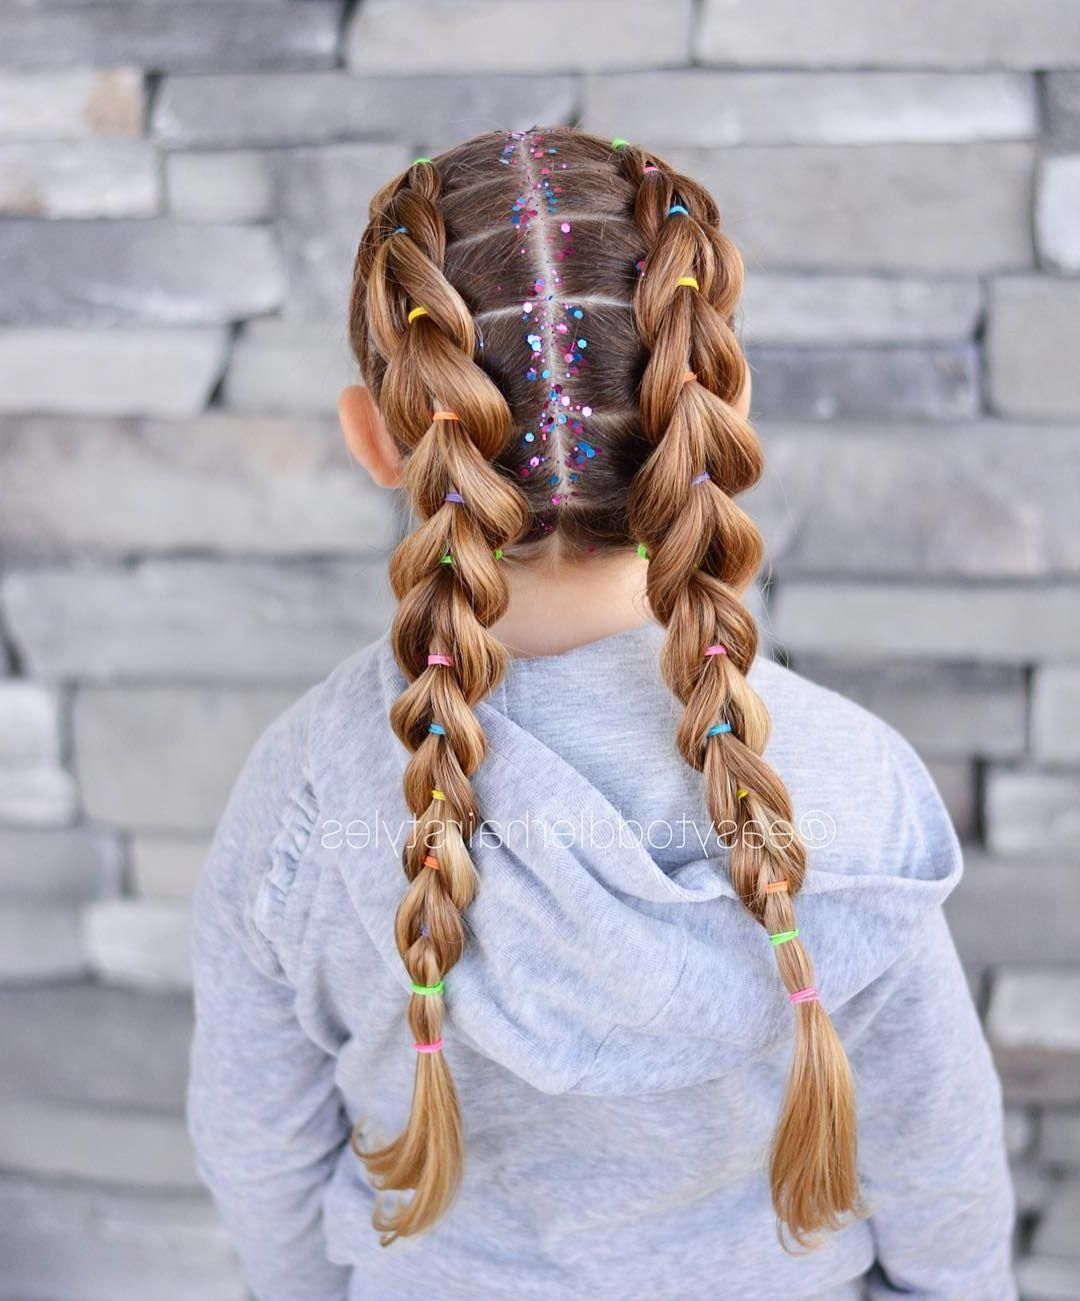 25 Easy Wacky Hairstyles For School Girl Below I Have